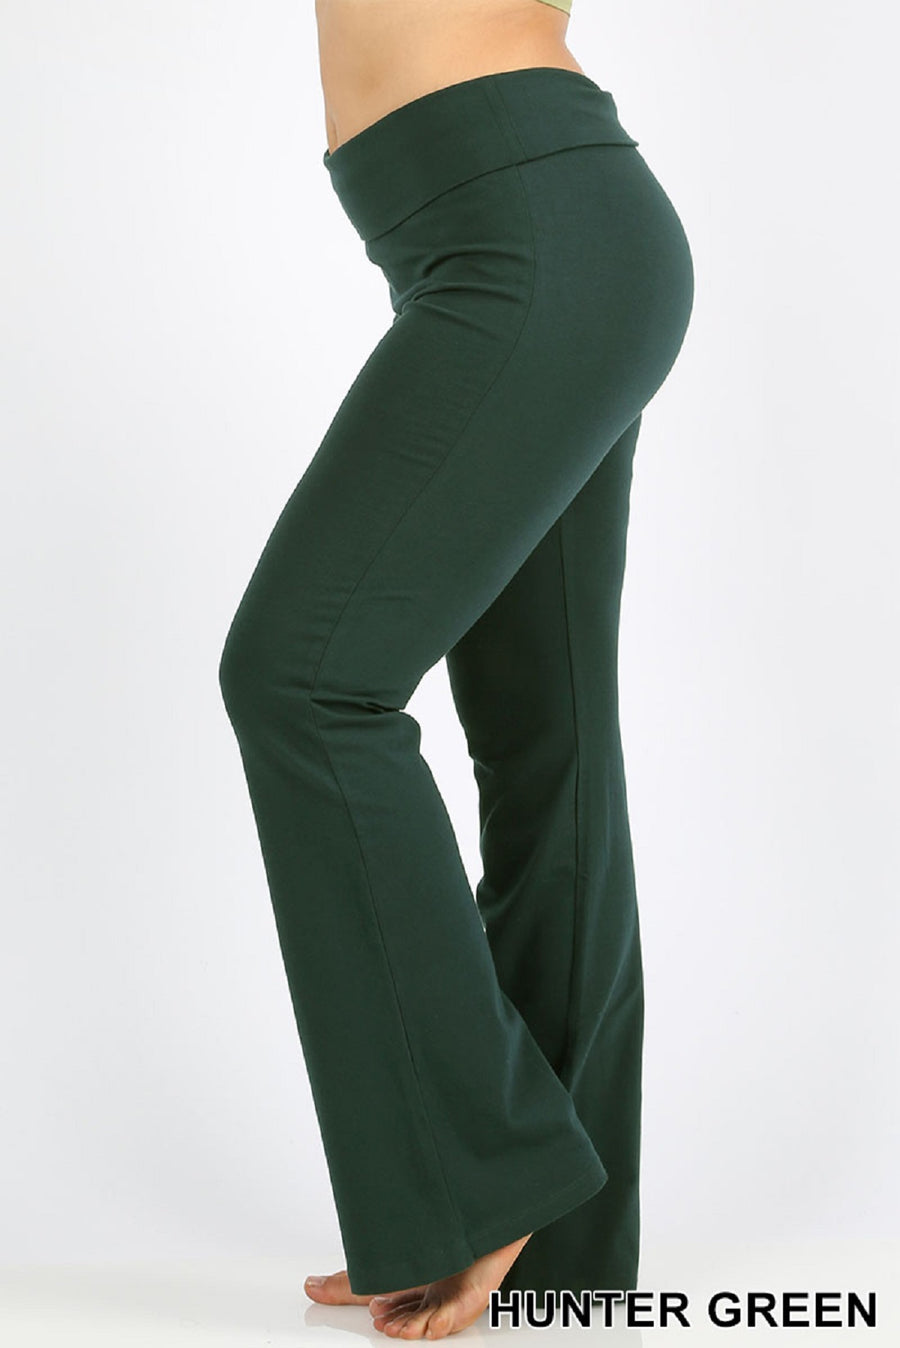 Zenana Women Fold Over Waist Cotton Stretch Flare Leg Boot Cut Yoga Pants Leggings Hunter Green